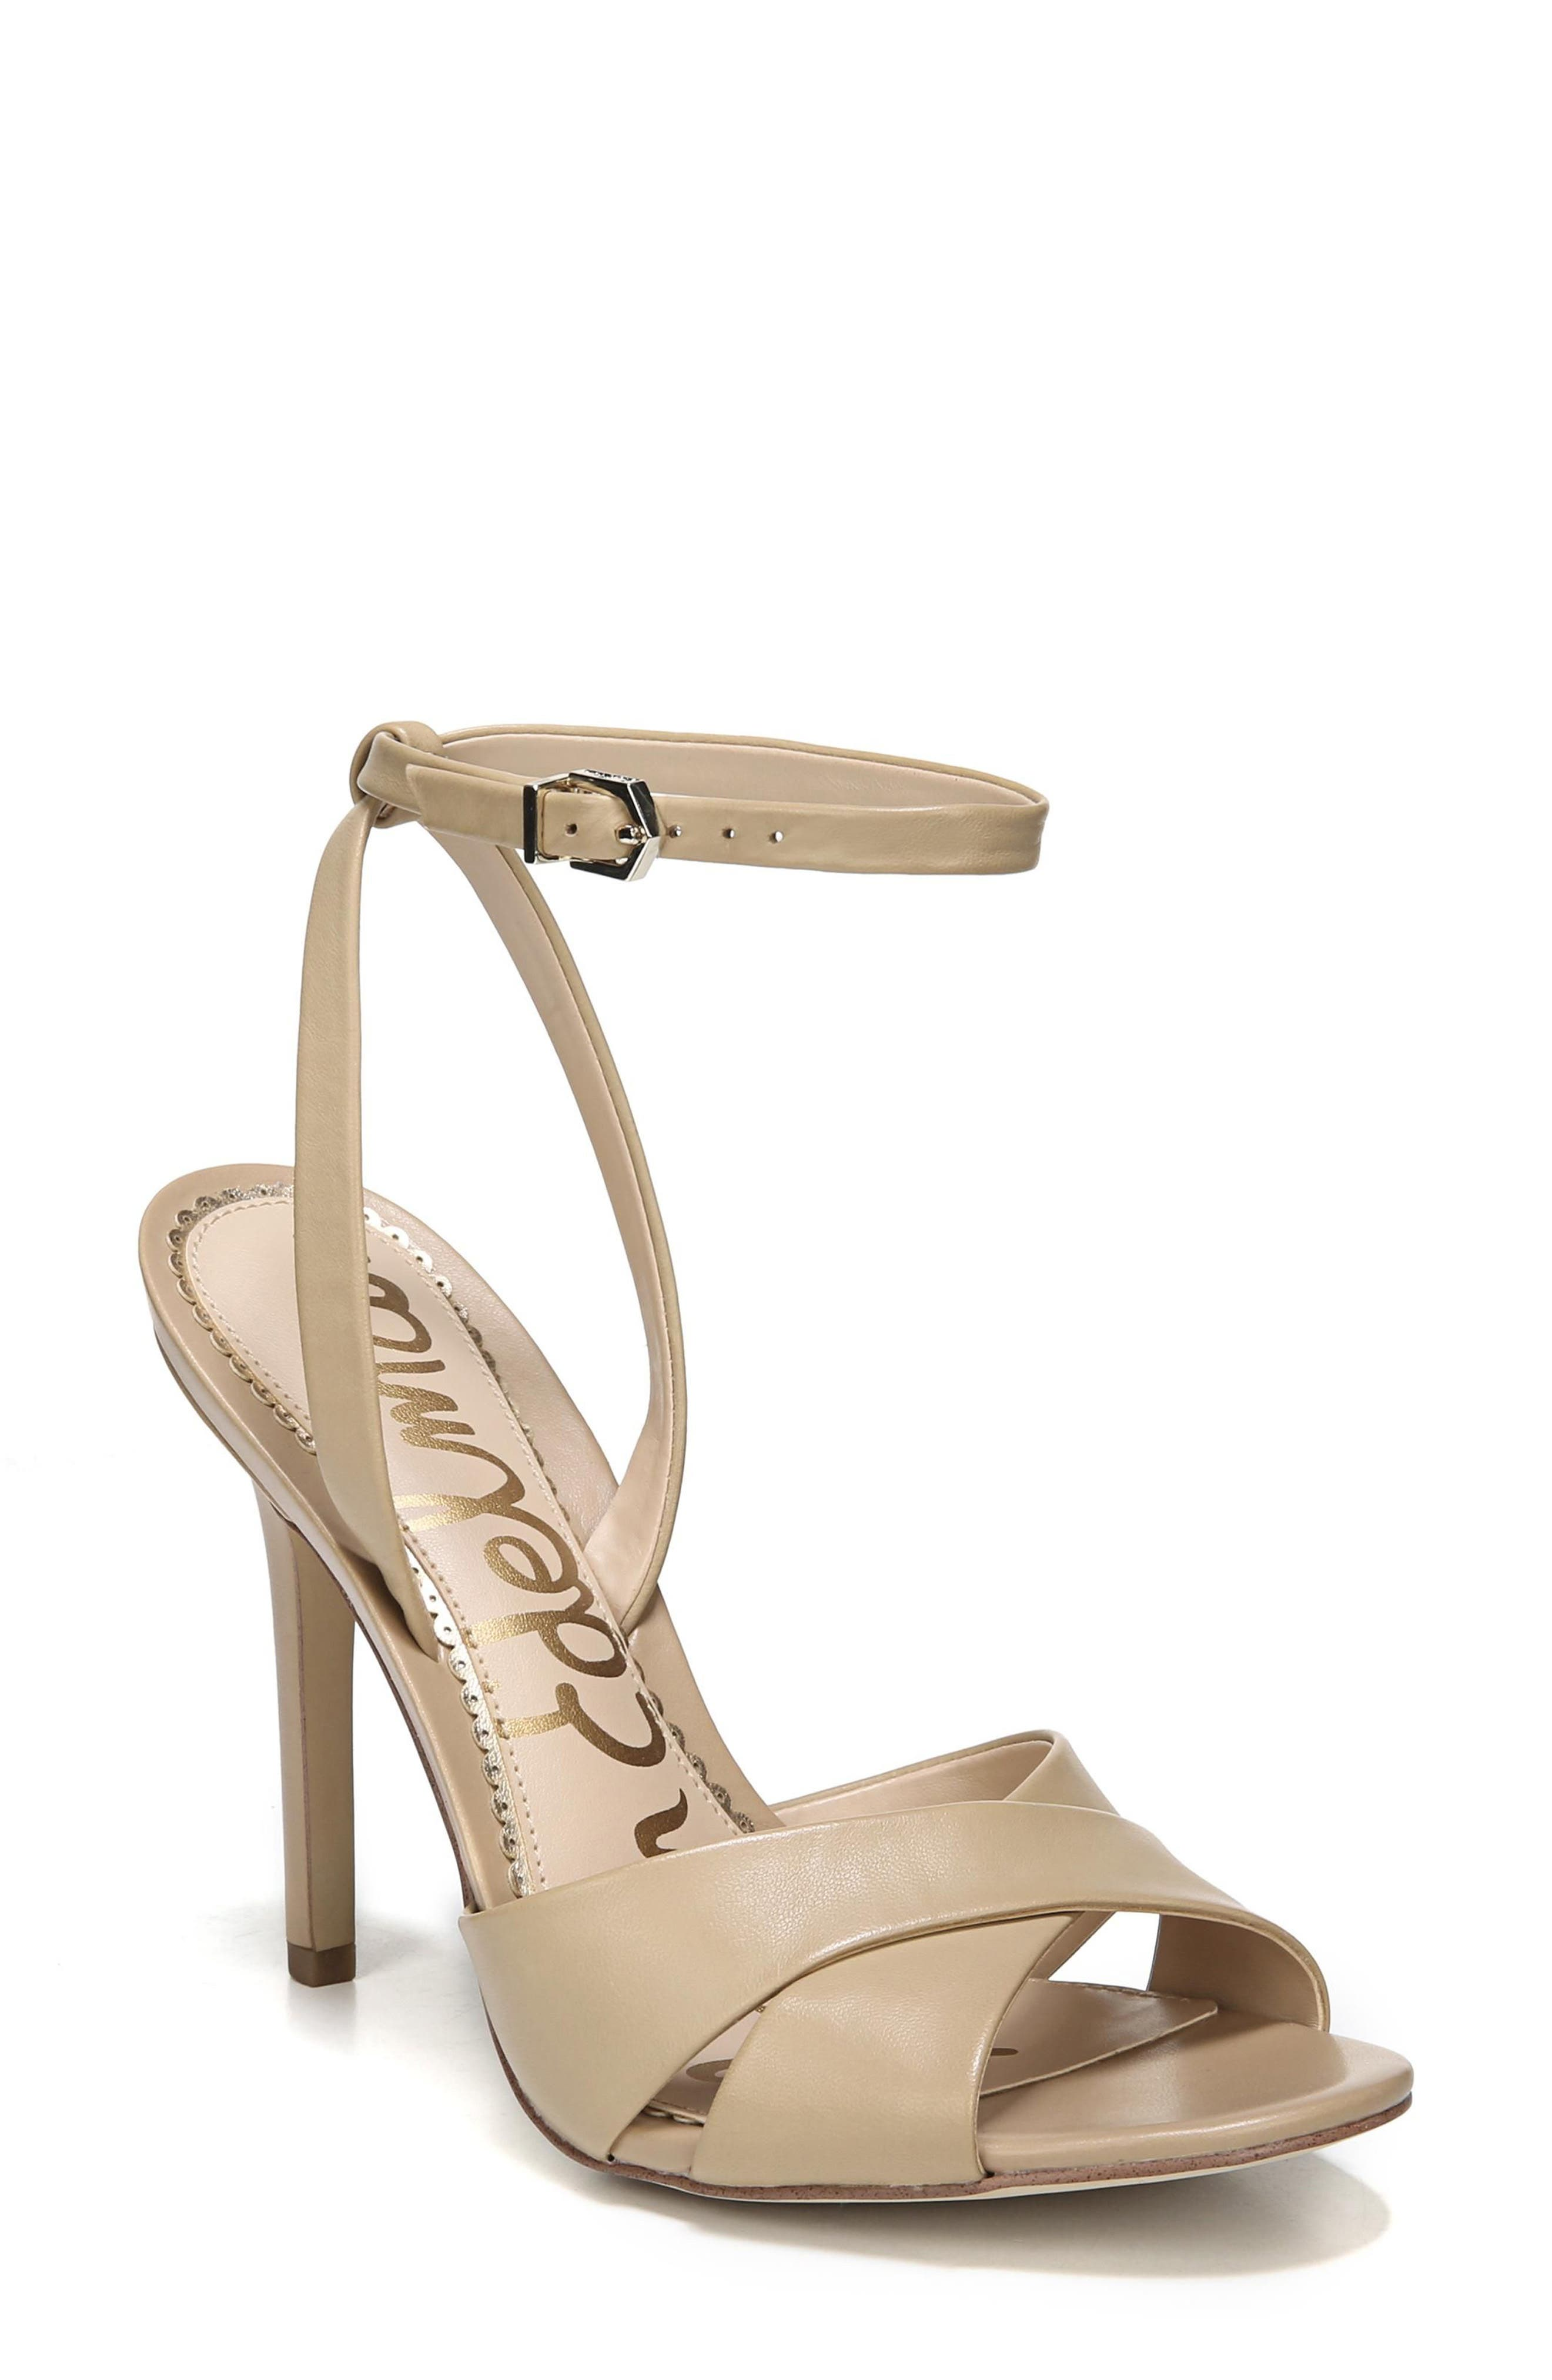 Aly Ankle Strap Sandal,                         Main,                         color, Classic Nude Leather